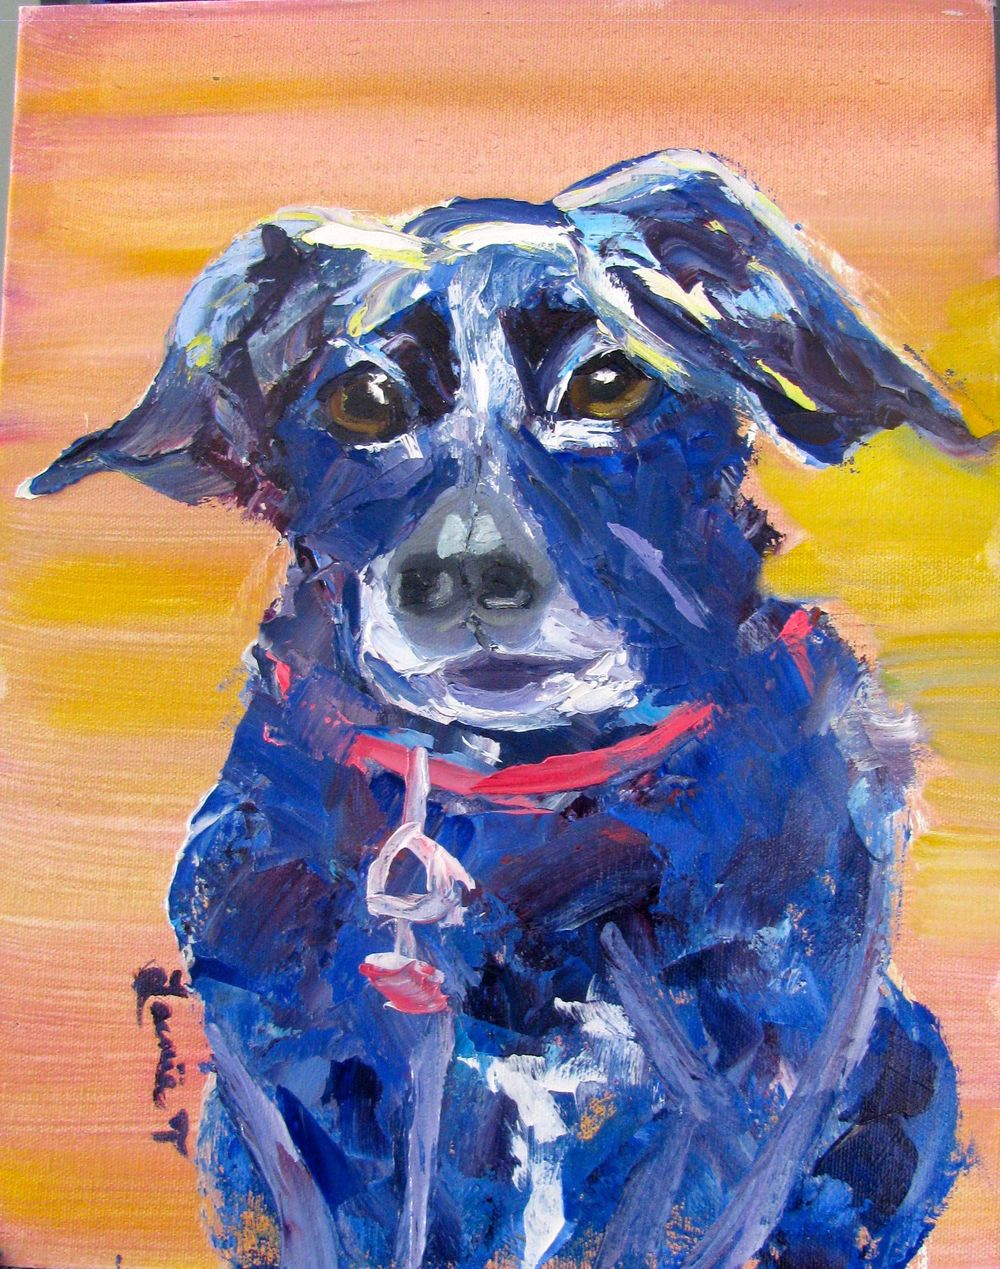 """""""We love the painting! The colors you chose for Sadie's fur are lovely. Her eyes look so expressive in the painting. You captured her intelligence. Thank you Laurie!"""" - Laura, 2014"""